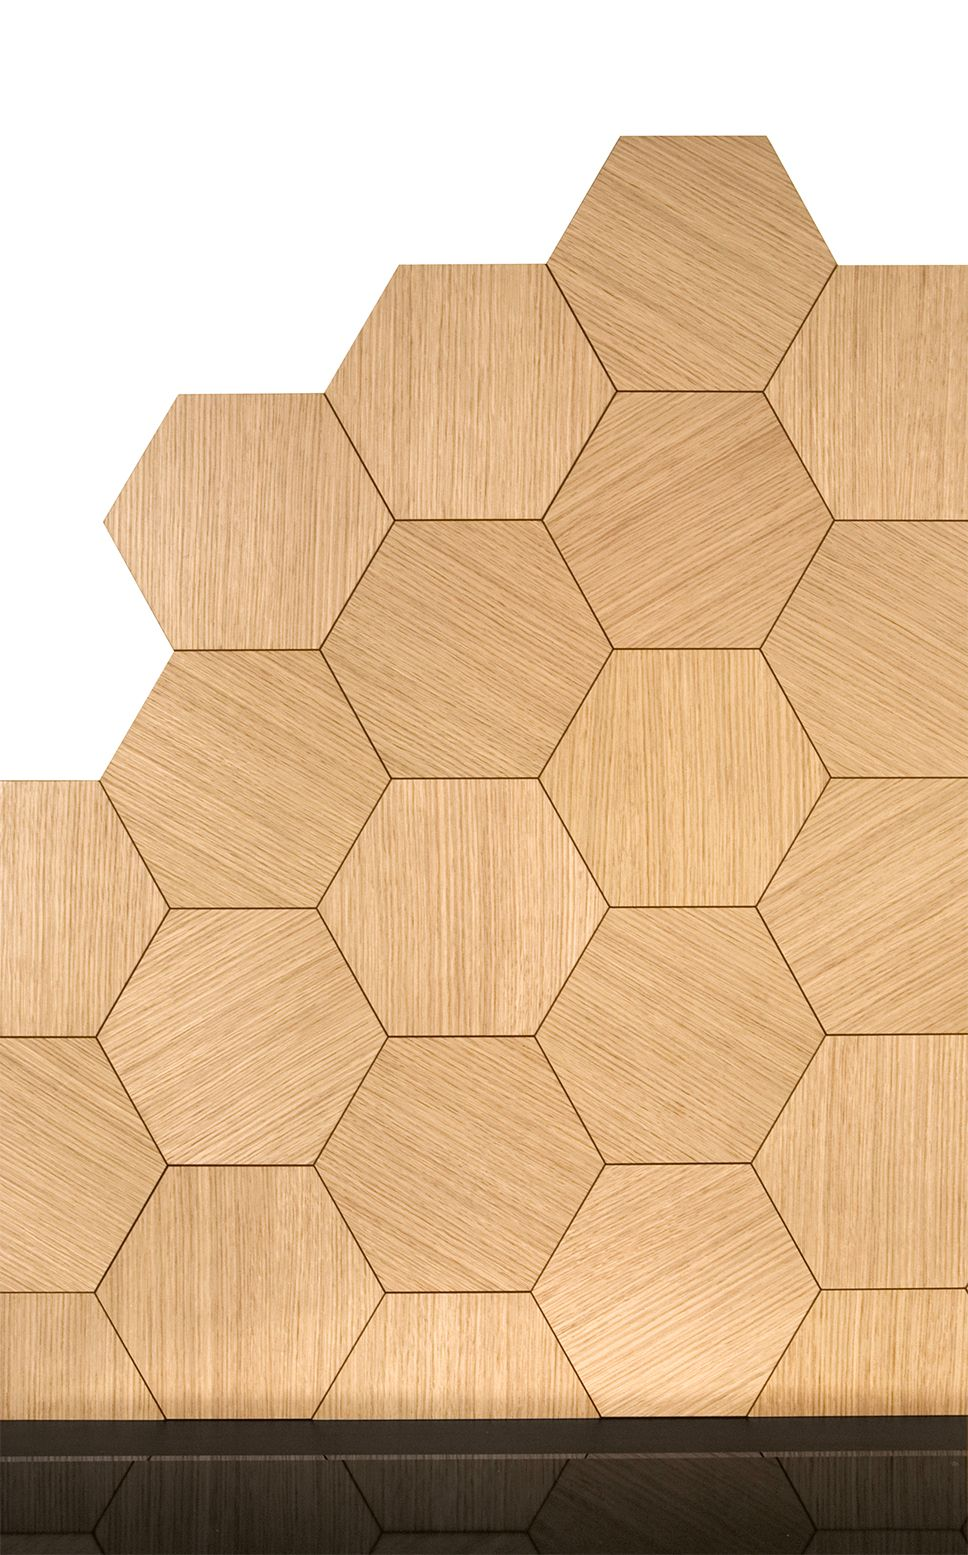 Hexagonal tiles NB 80 | Wall decorations, Decoration and Traditional